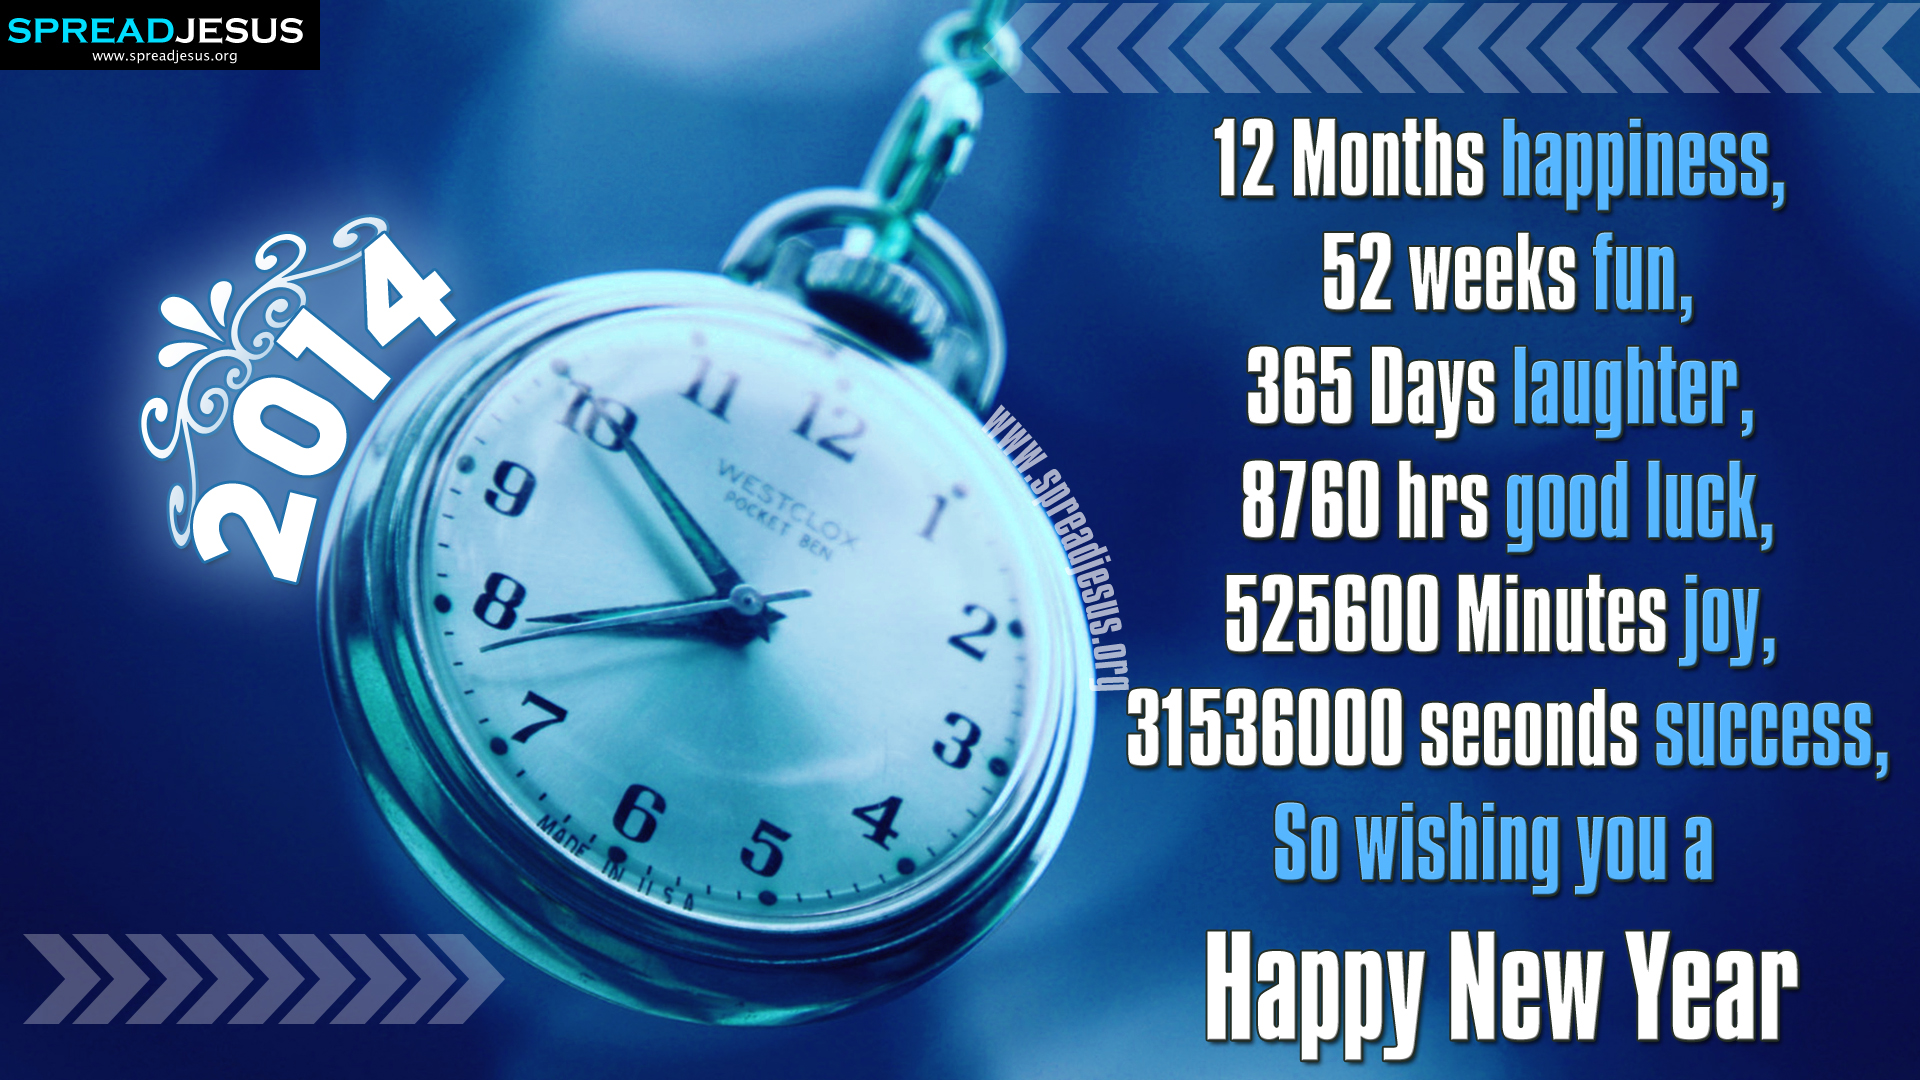 New Year 2014 Greetings Hd-wallpapers Wishing You A - Happy New Year Quotes Hd , HD Wallpaper & Backgrounds